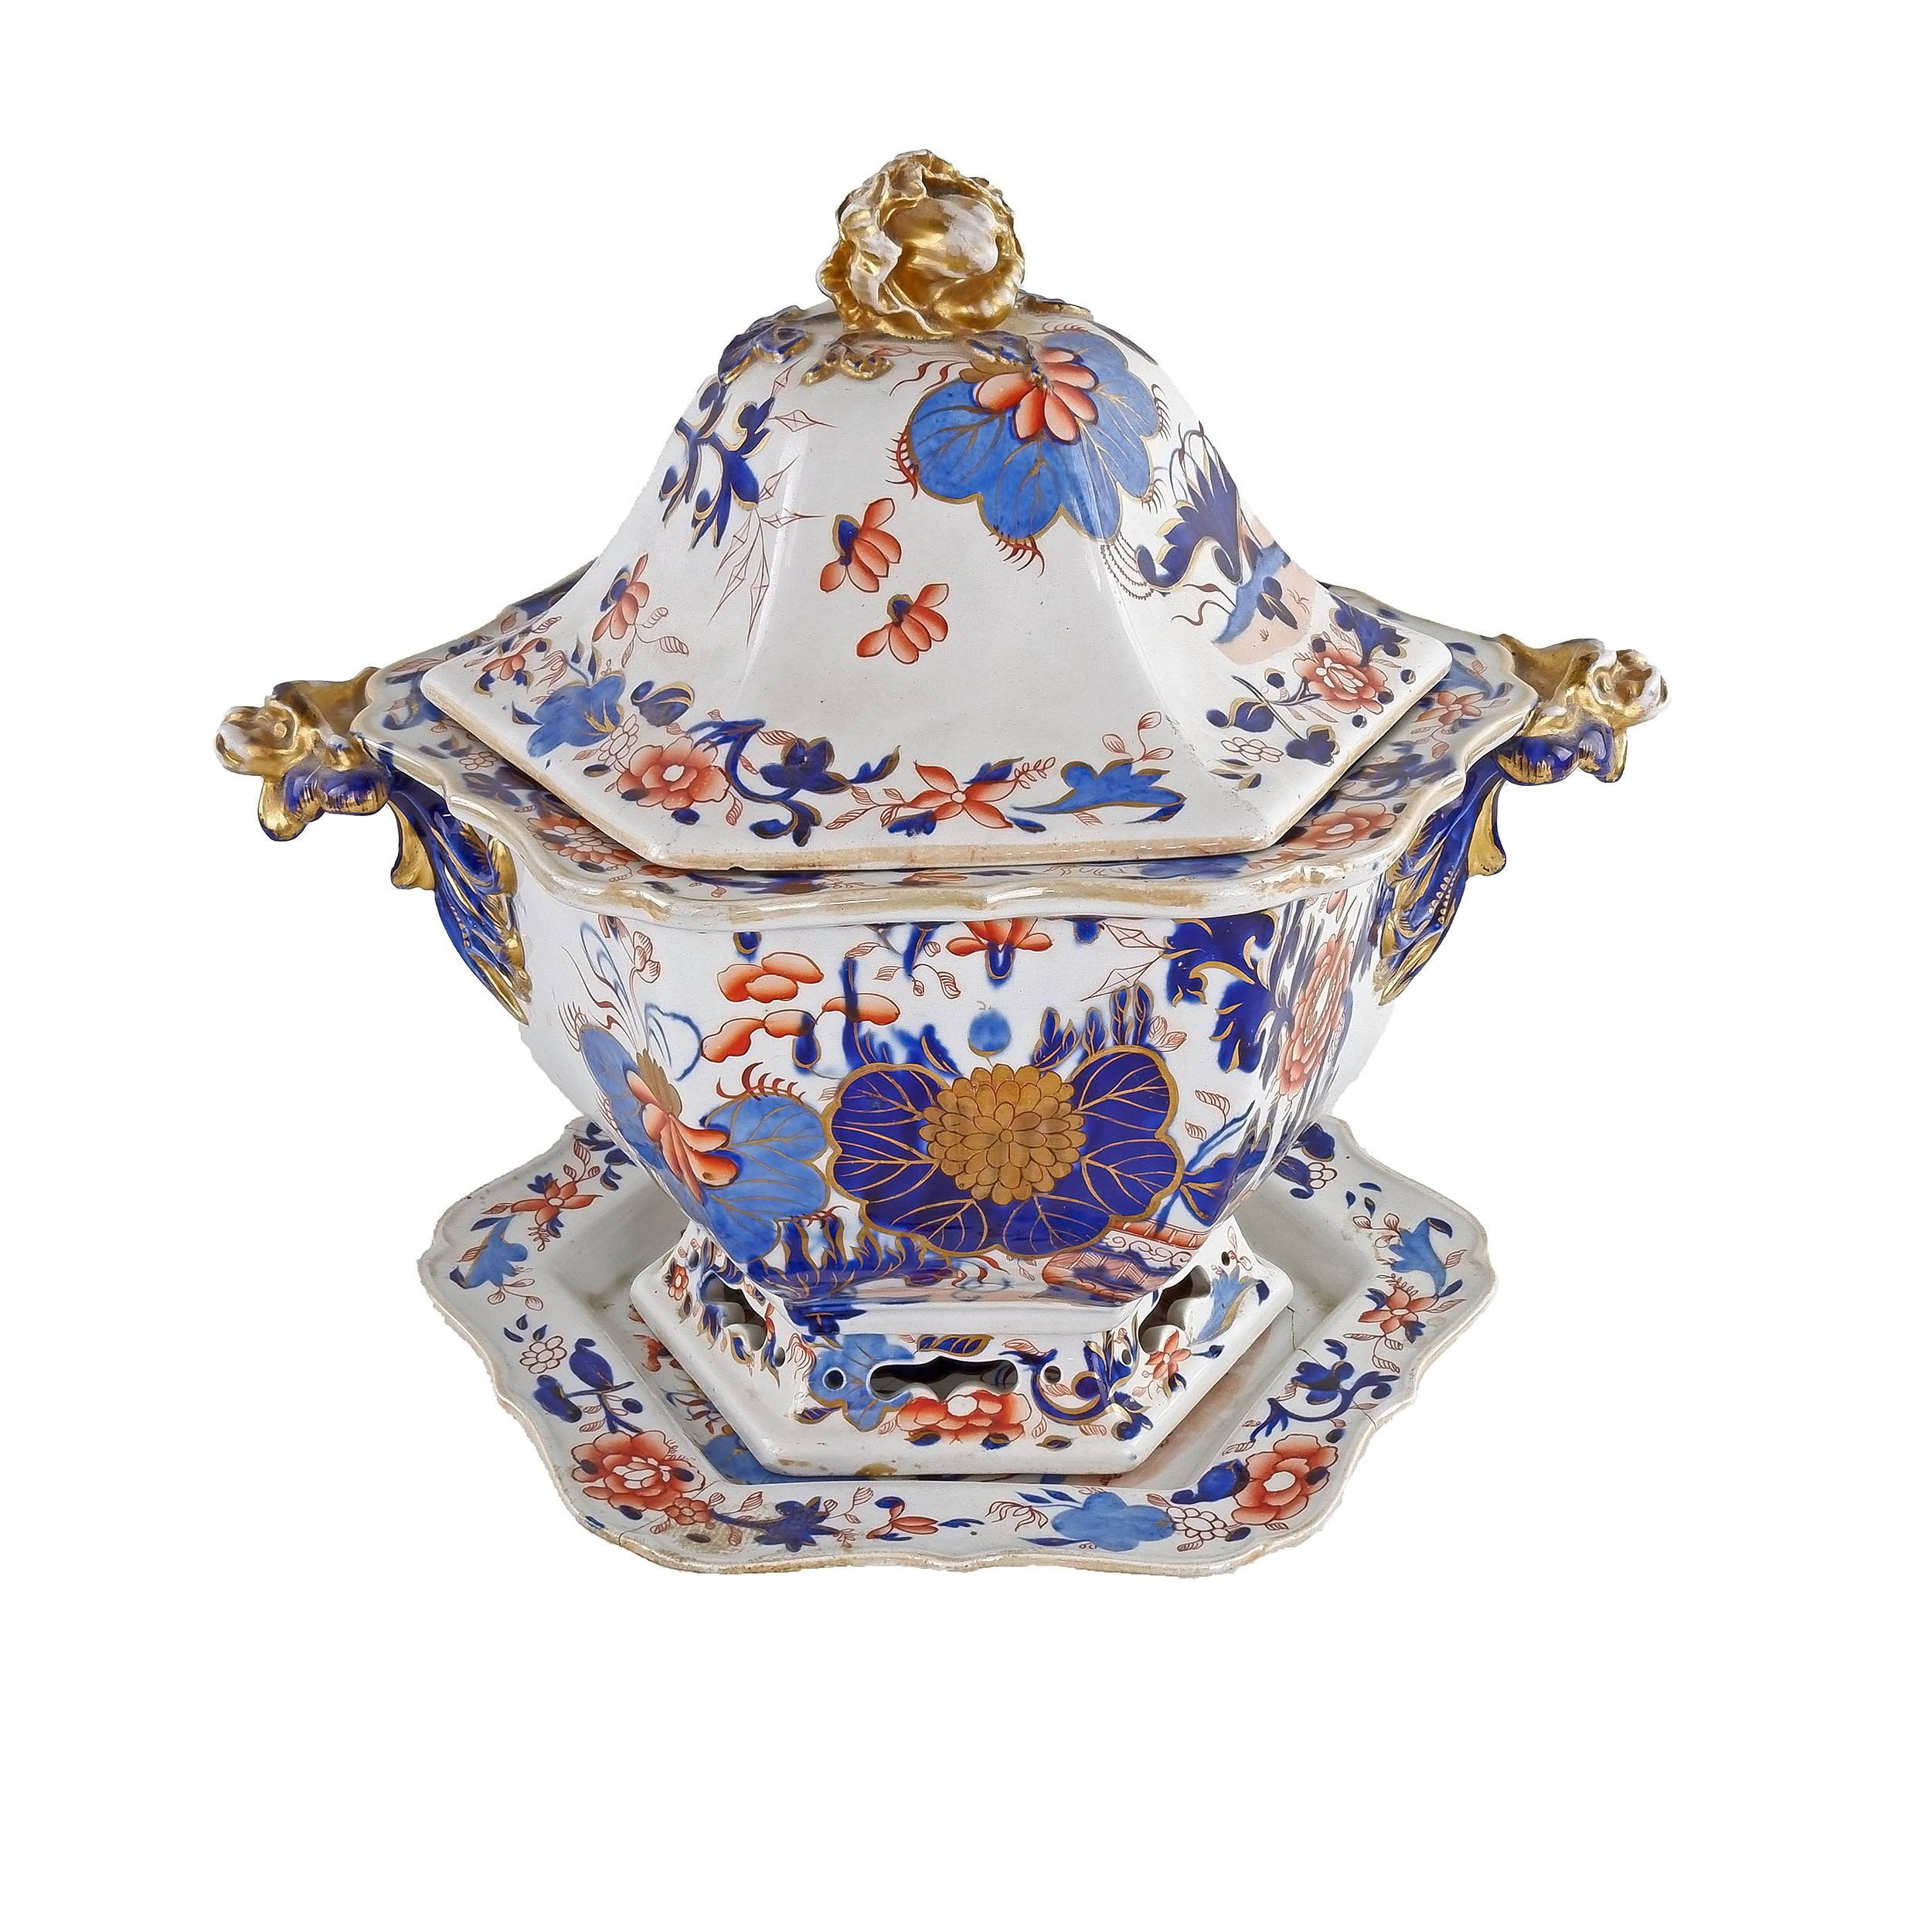 '19th Century Masons Ironstone Soup Tureen Owned by Governor Sir John Forrest'